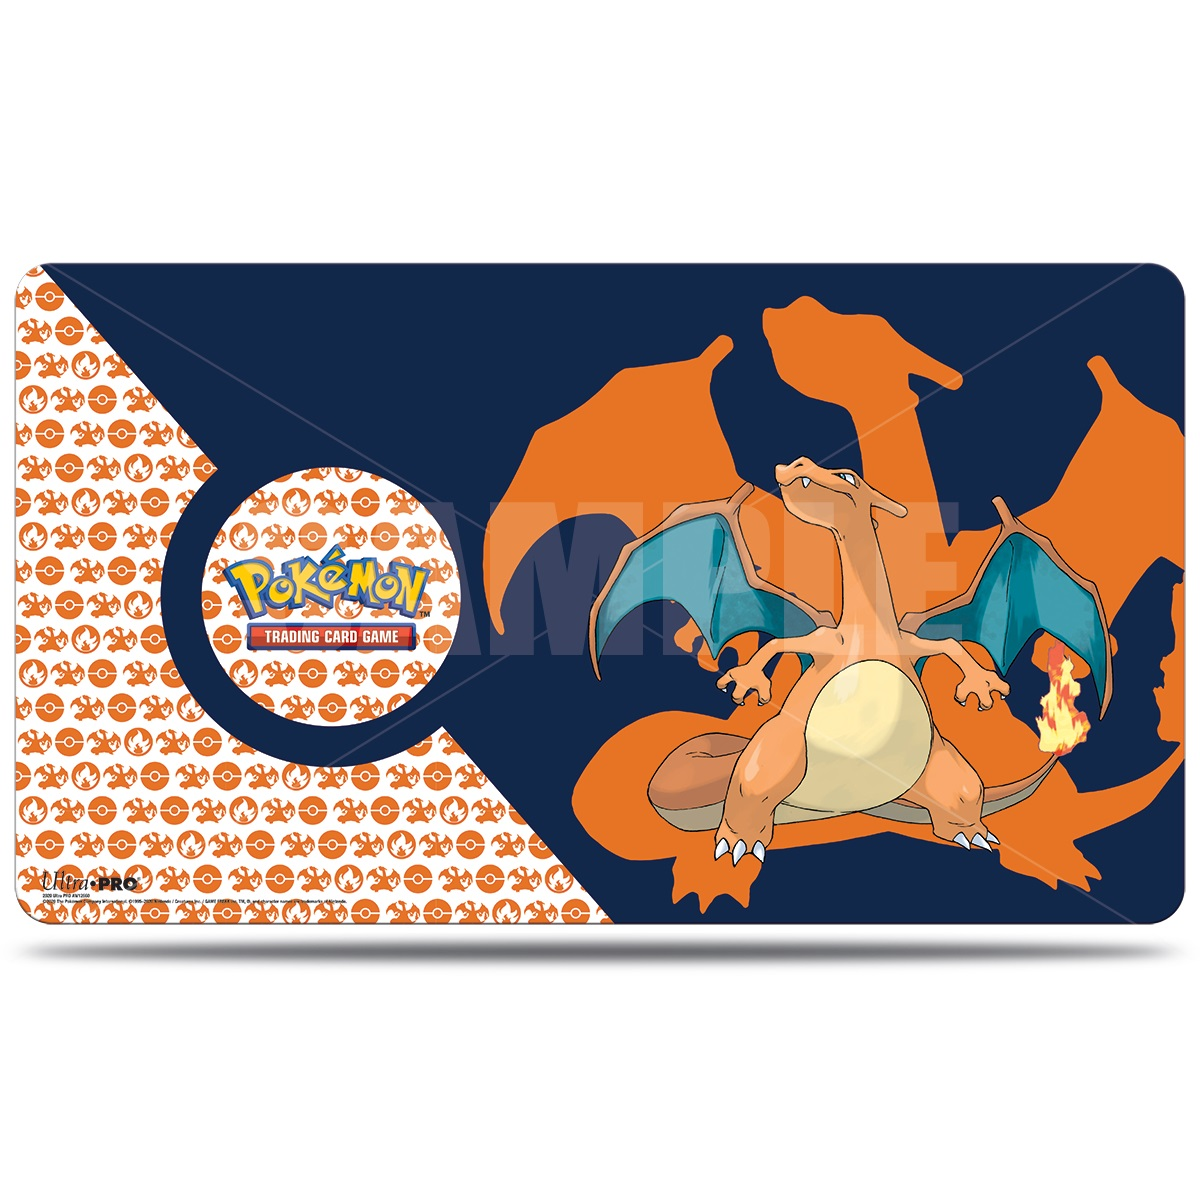 Ultra Pro Pokemon Playmat - Charizard 2020